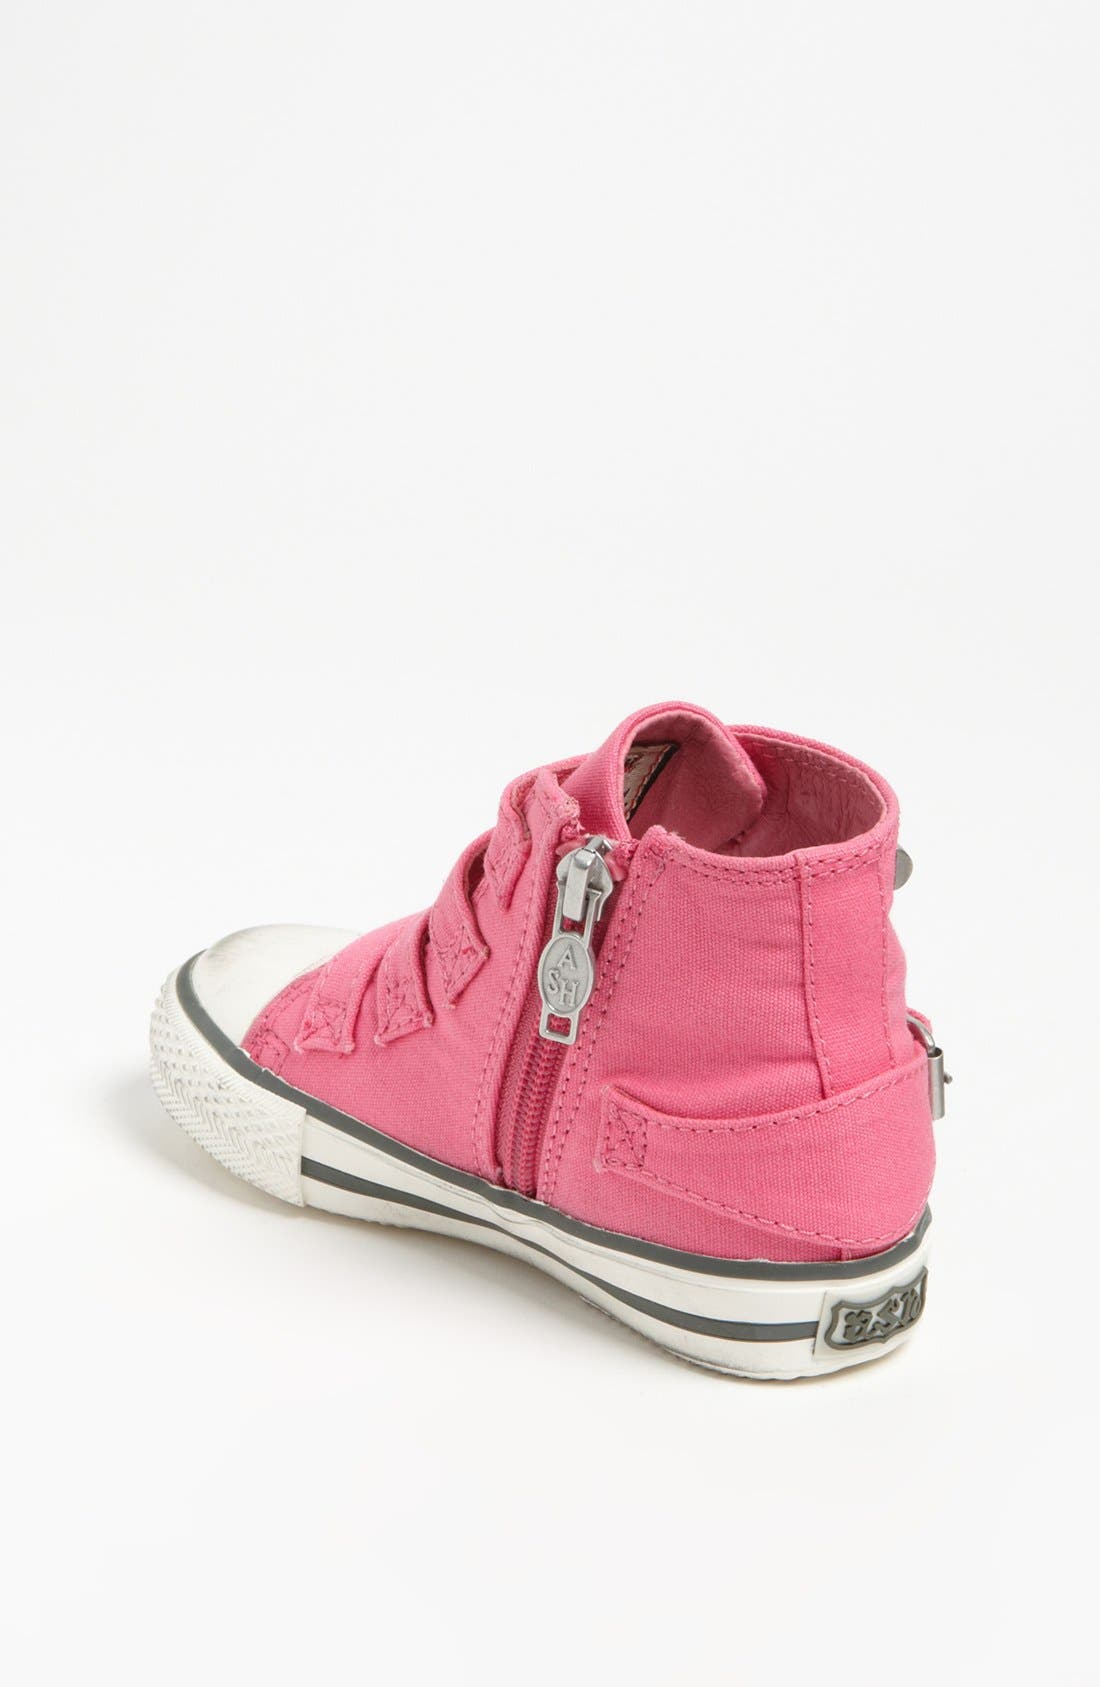 Alternate Image 2  - Ash 'Flip' High Top Sneaker (Toddler, Little Kid & Big Kid)